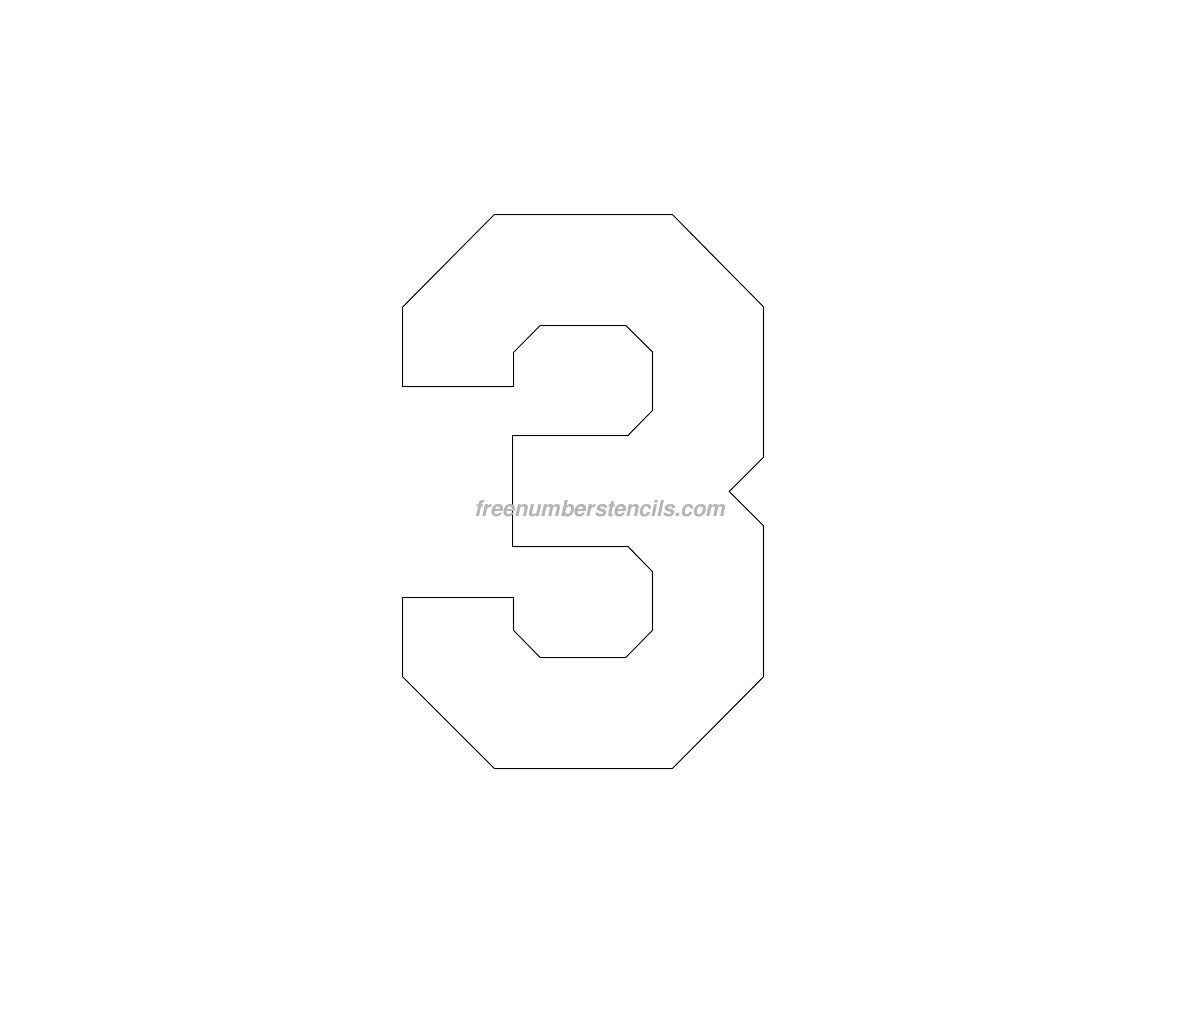 free numbers templates - free jersey printable 3 number stencil